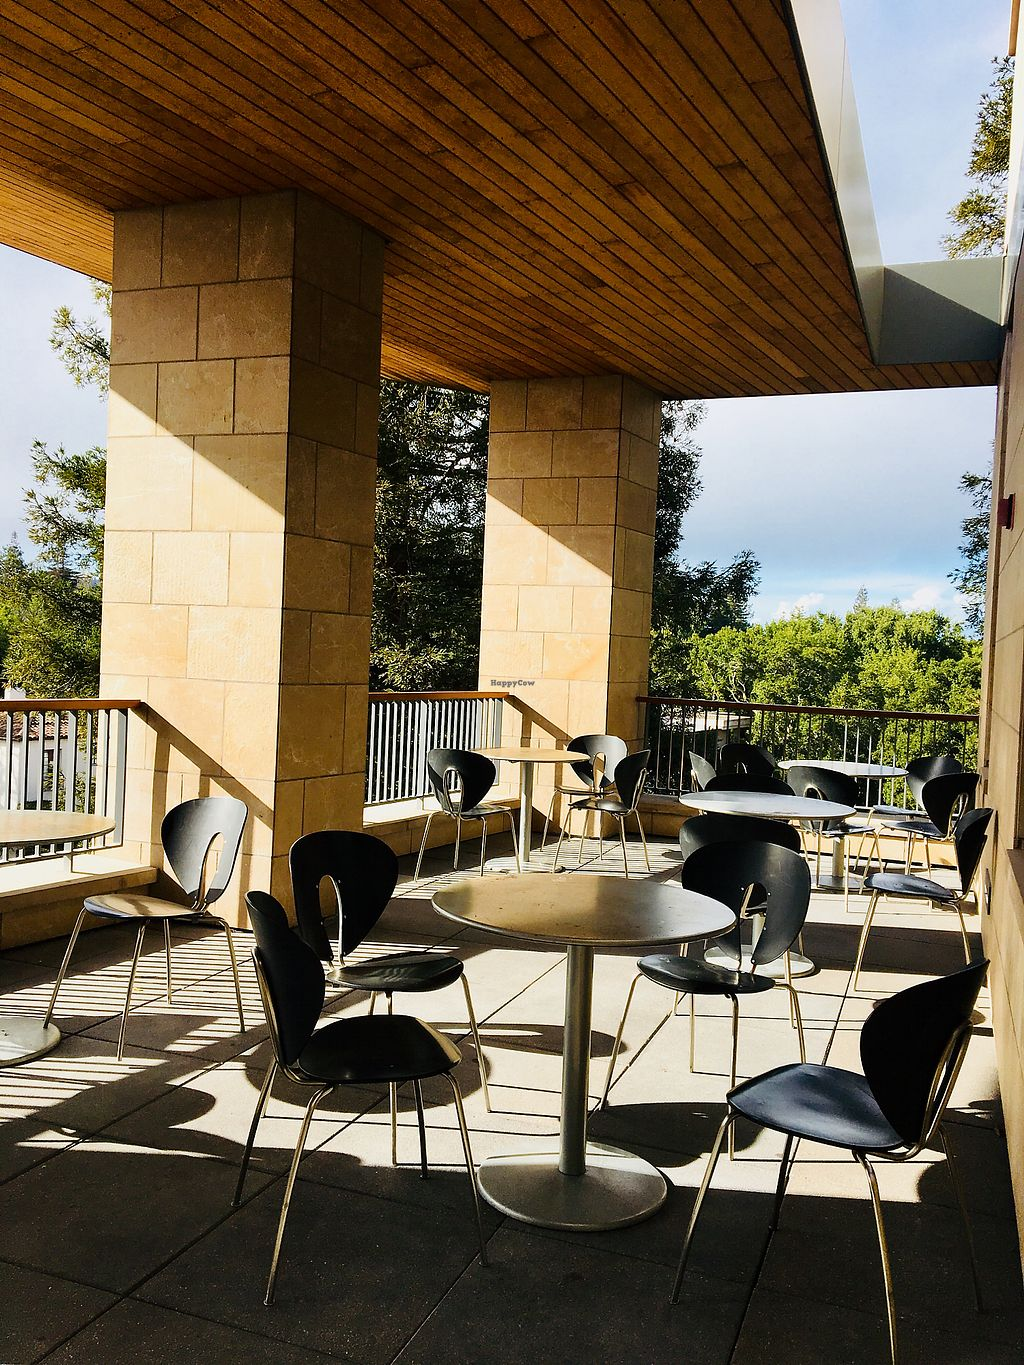 """Photo of 3 Bees Cafe  by <a href=""""/members/profile/Clean%26Green"""">Clean&Green</a> <br/>Terrace seating  <br/> January 19, 2018  - <a href='/contact/abuse/image/107313/348596'>Report</a>"""